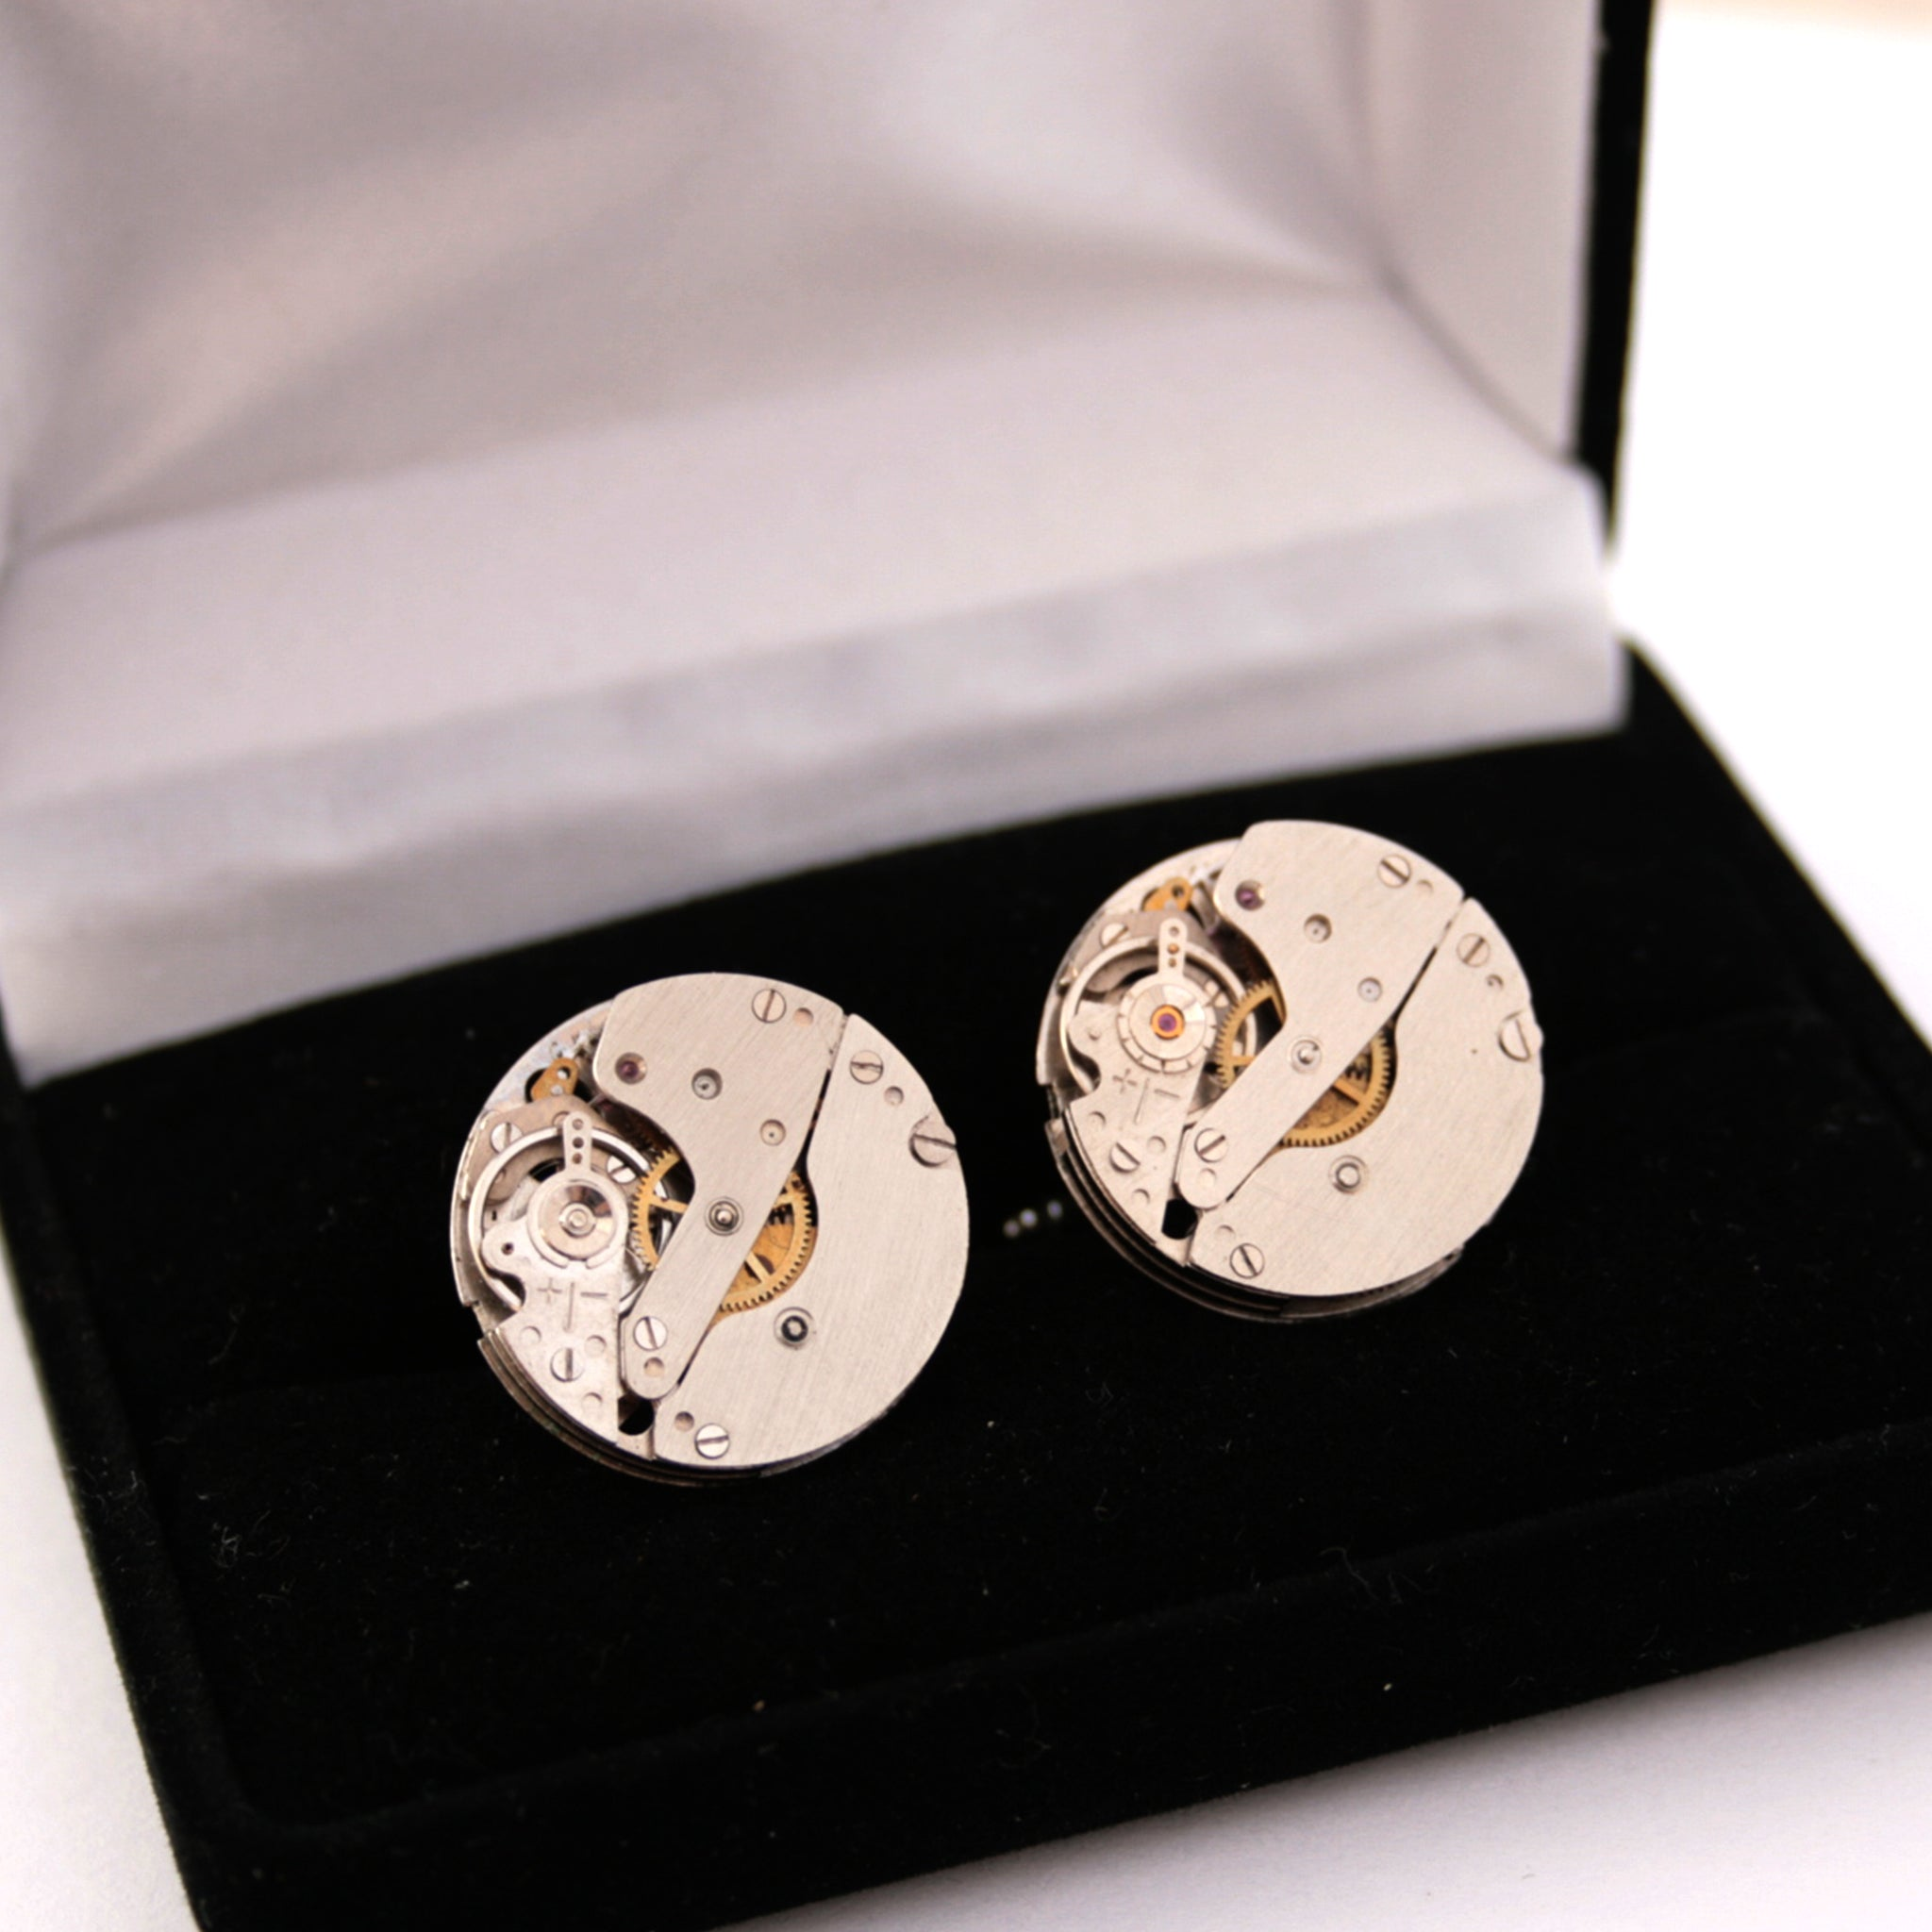 Novelty Cufflinks made of Watch Movements in black velour box